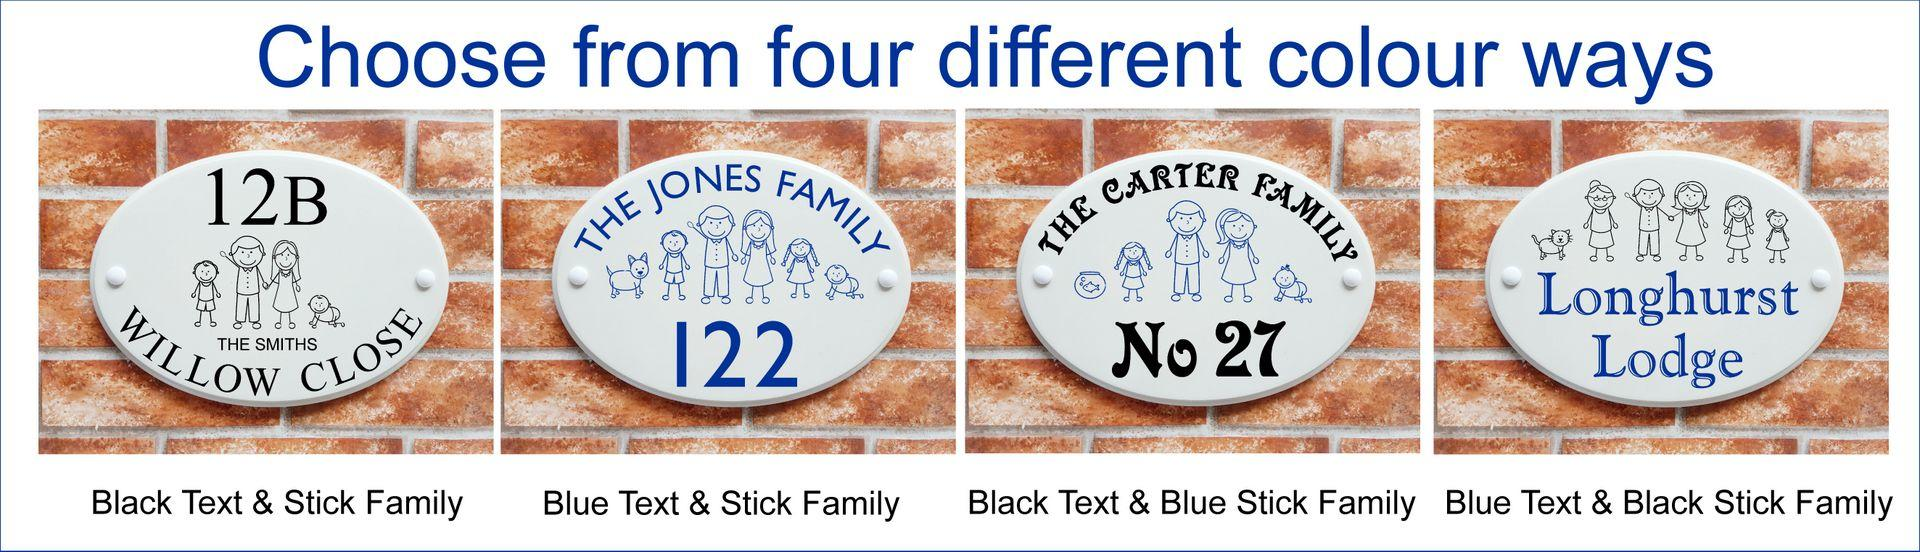 Print colours offered on stick family characters house signs